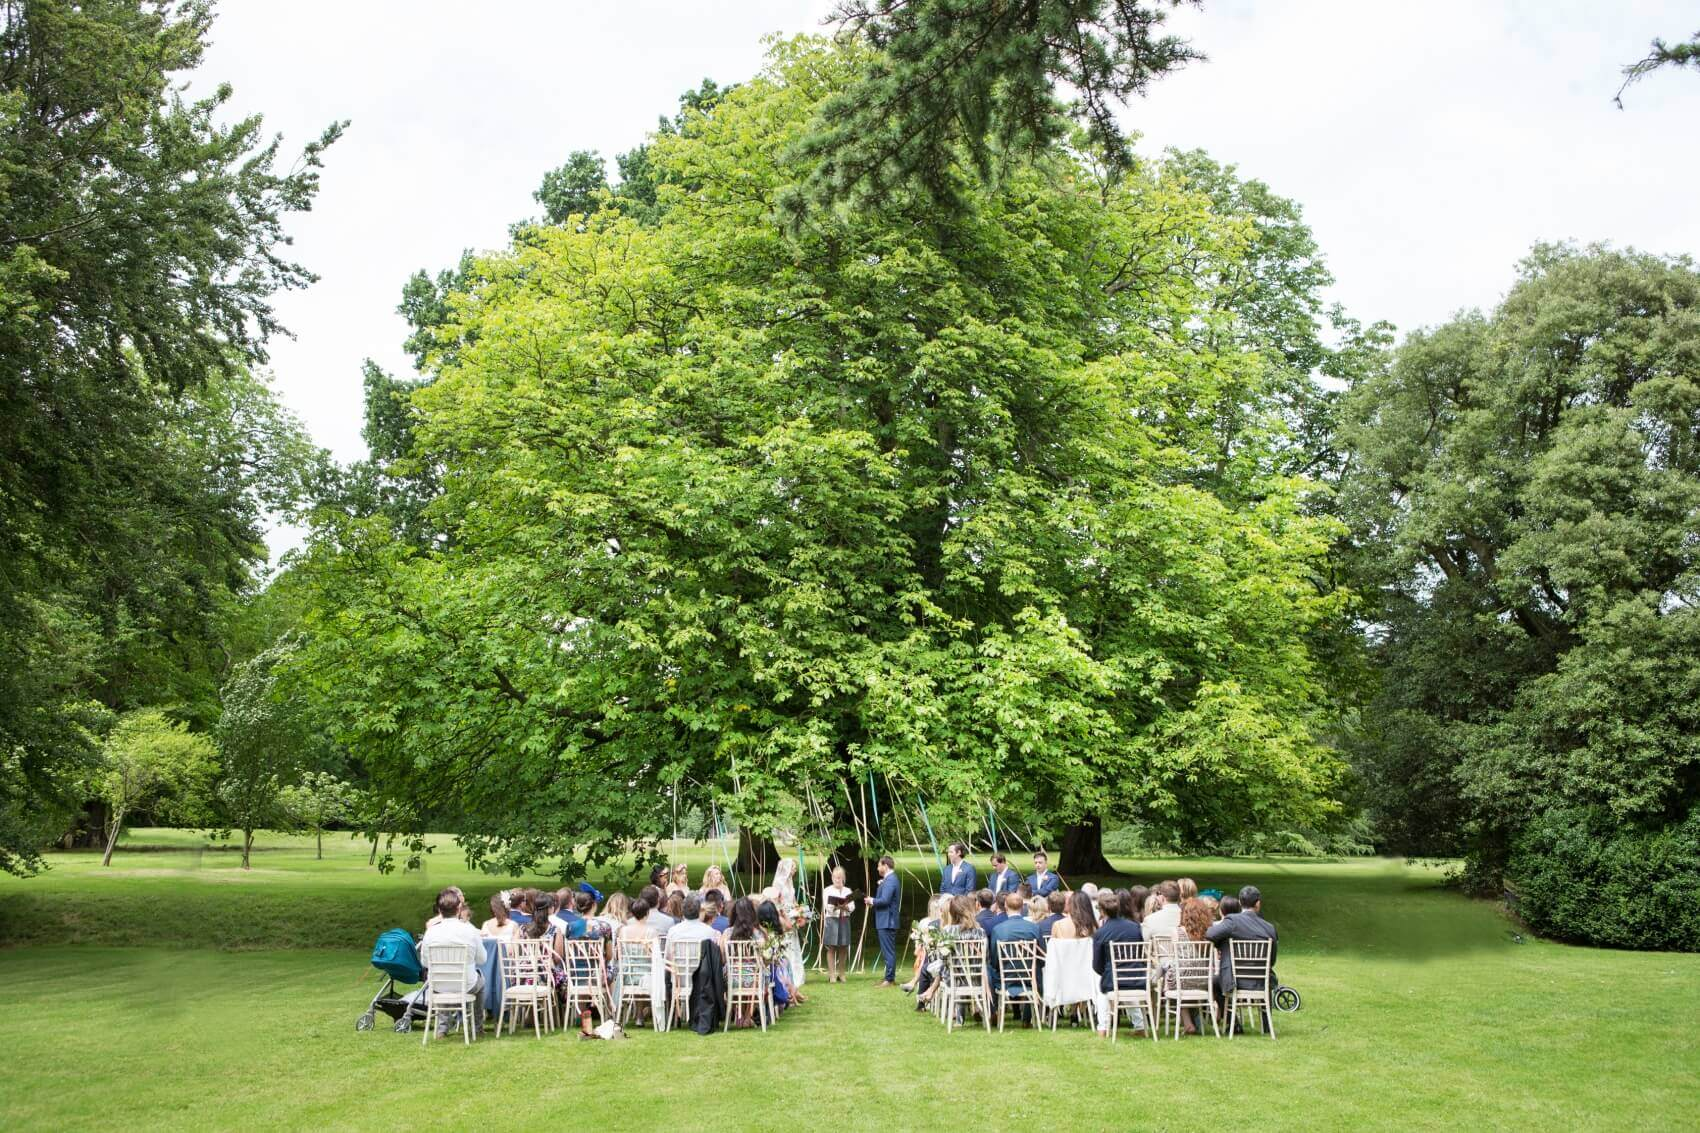 Outdoor wedding ceremony under an old tree with ribbons